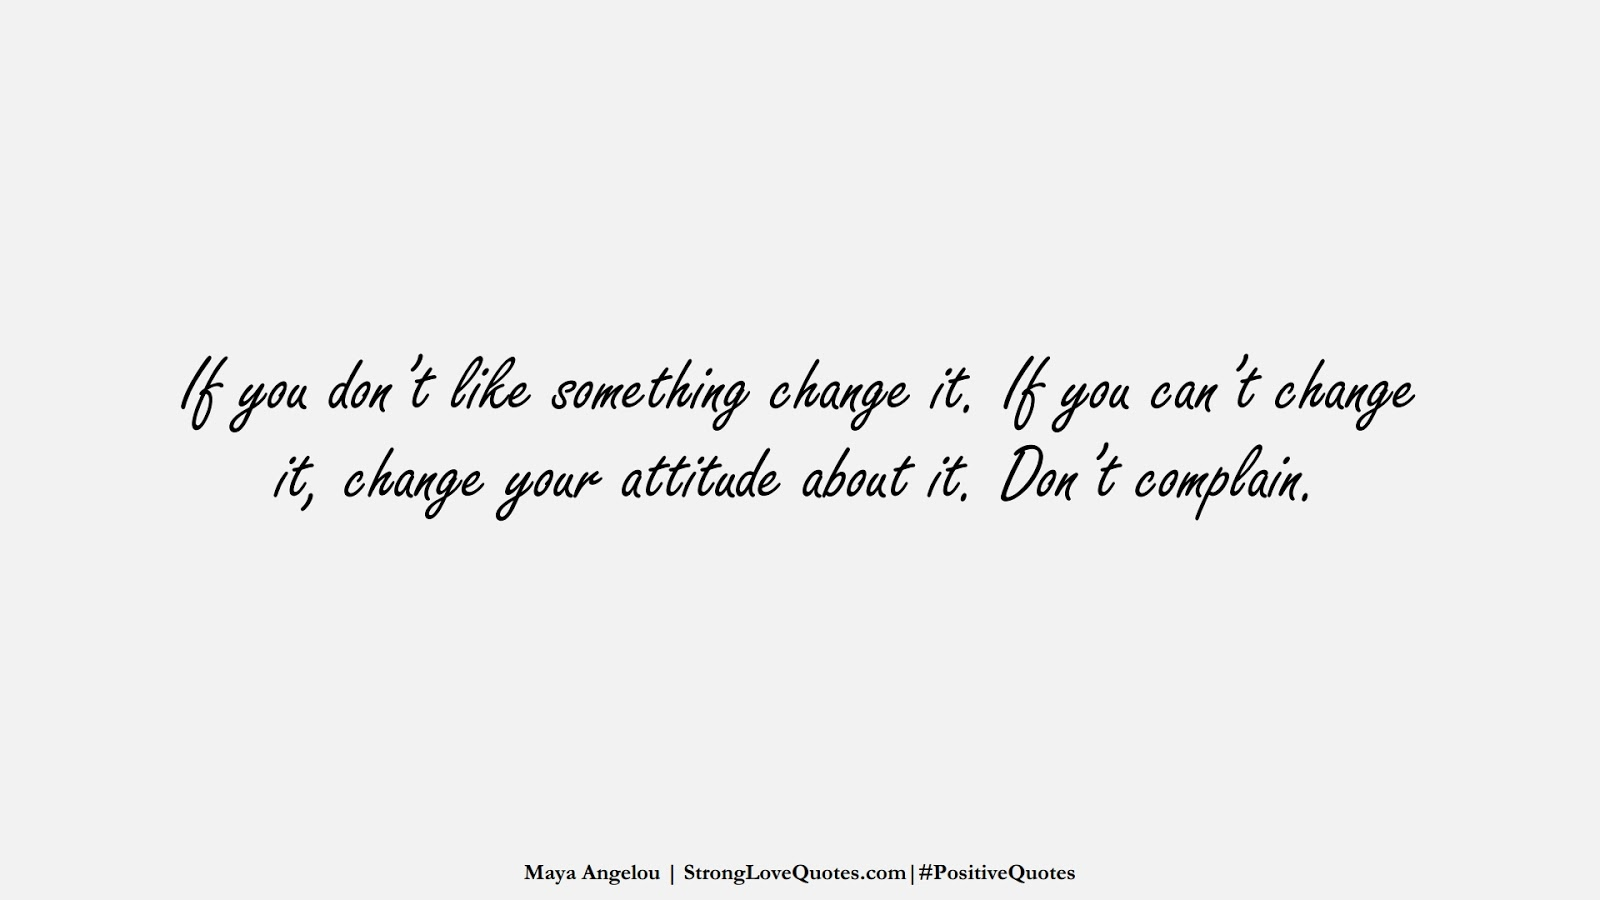 If you don't like something change it. If you can't change it, change your attitude about it. Don't complain. (Maya Angelou);  #PositiveQuotes